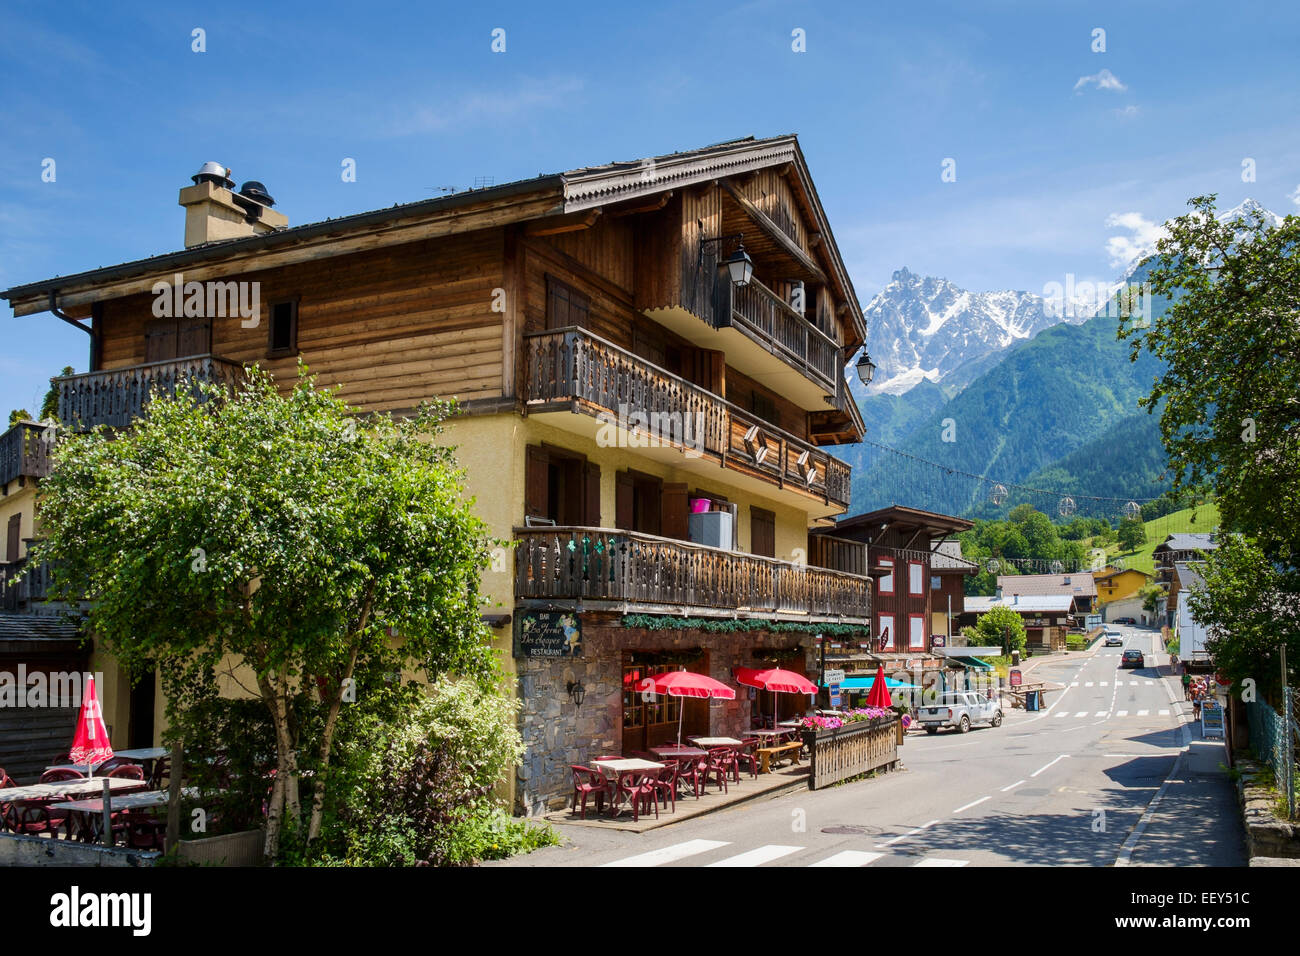 Hotel with bar cafe in les houches chamonix french alps for Les hotels francais